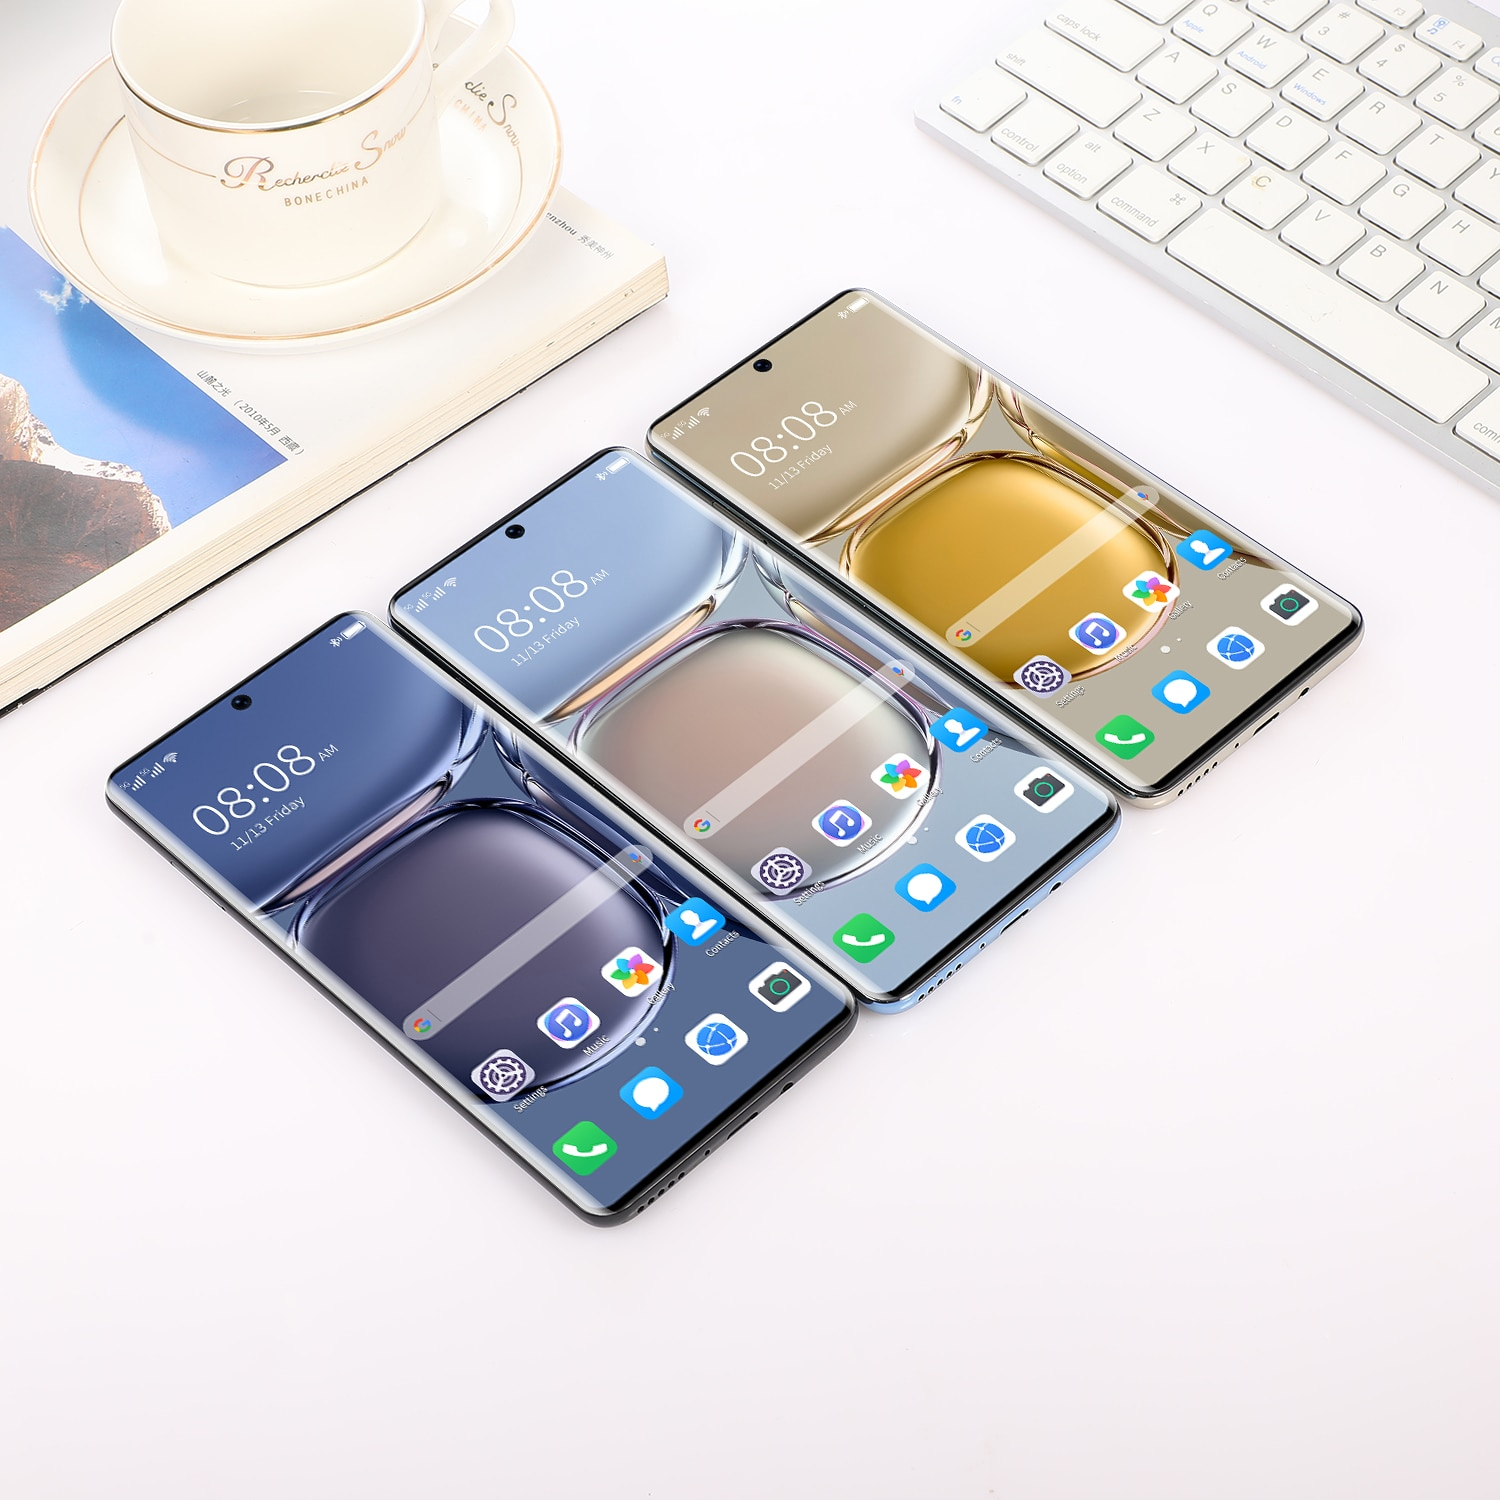 Cellphone HUAWE P50 Pro Global Version 8000mAh 7.3 '' Face ID Android 11 16G+512G 5G 10 Core Smartphone